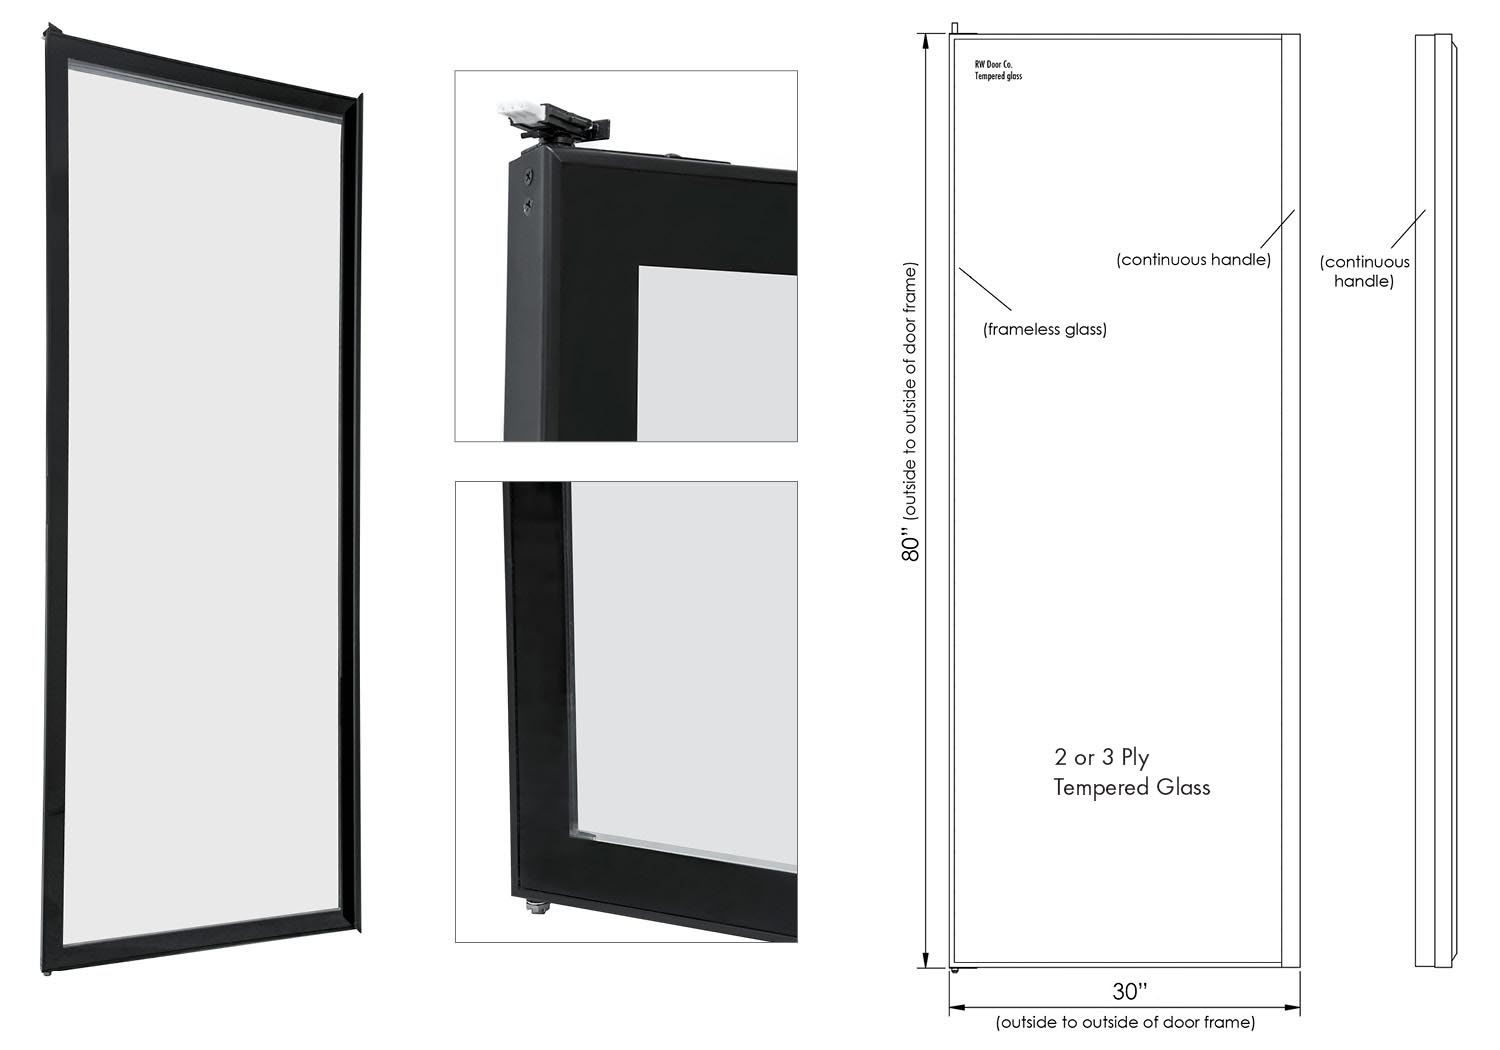 Rw international frameless display glass door for Frameless glass doors